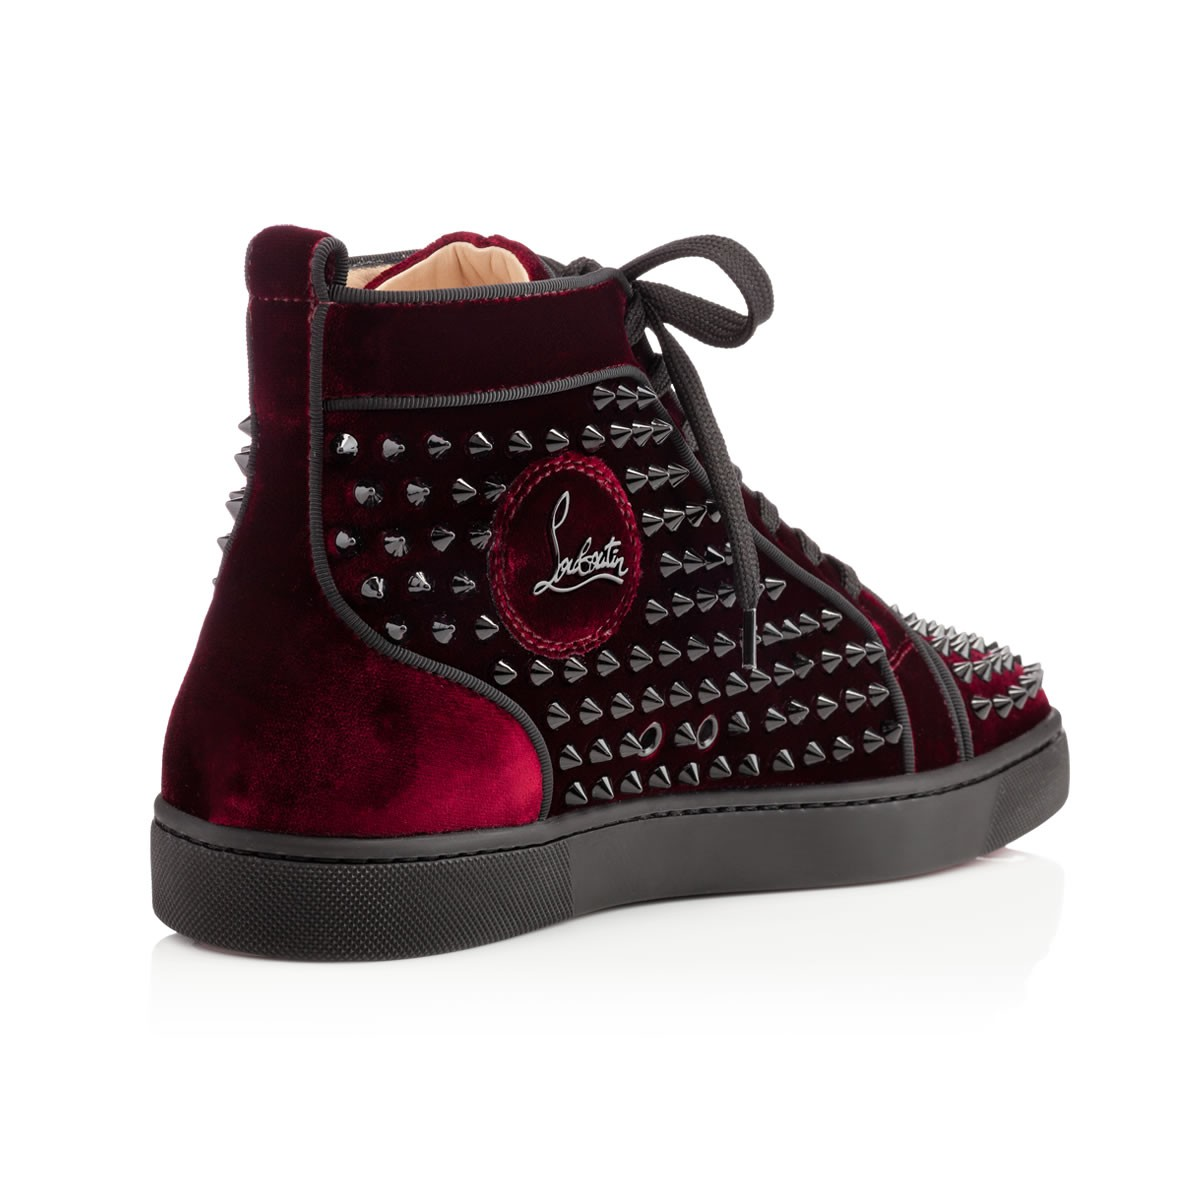 59180099c98f Lyst - Christian Louboutin Louis Orlato Mens Spikes in Red for Men